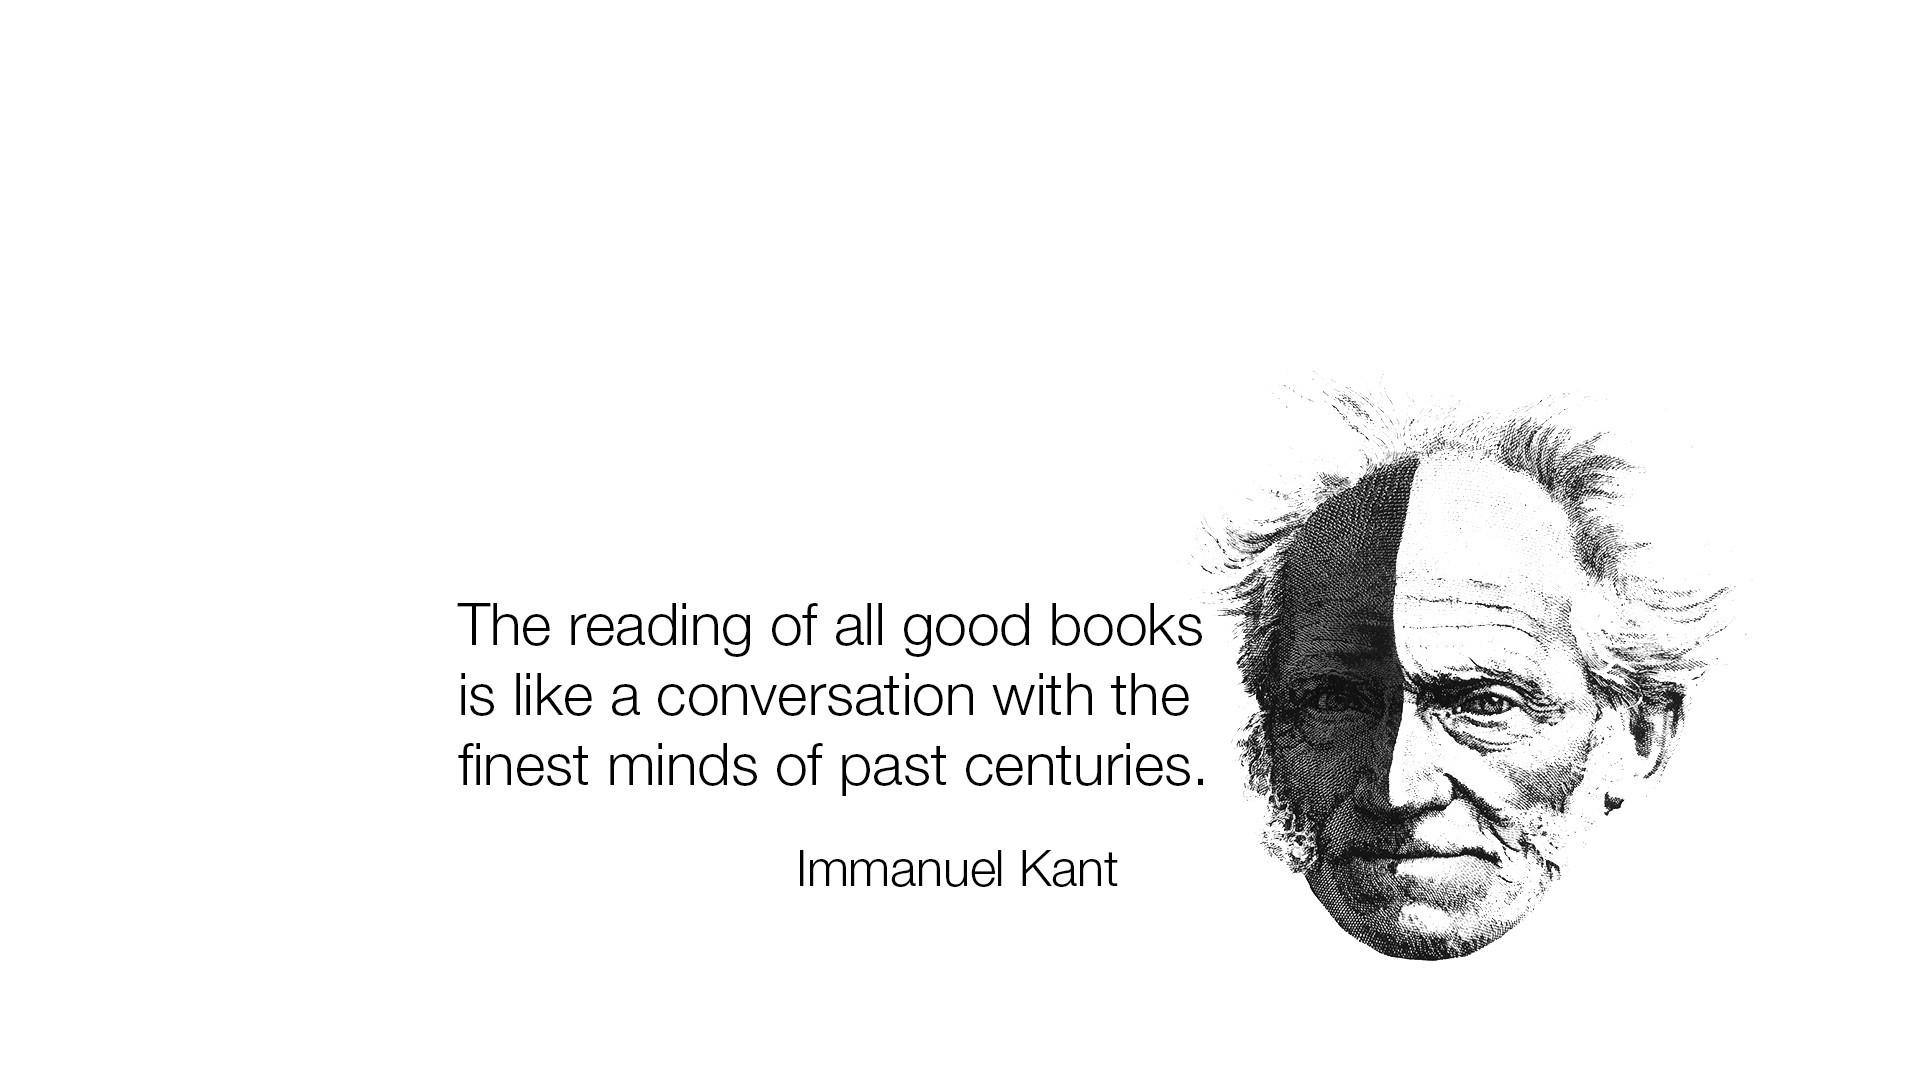 Immanuel Kant quote wallpaper other Wallpaper Better 1920x1080